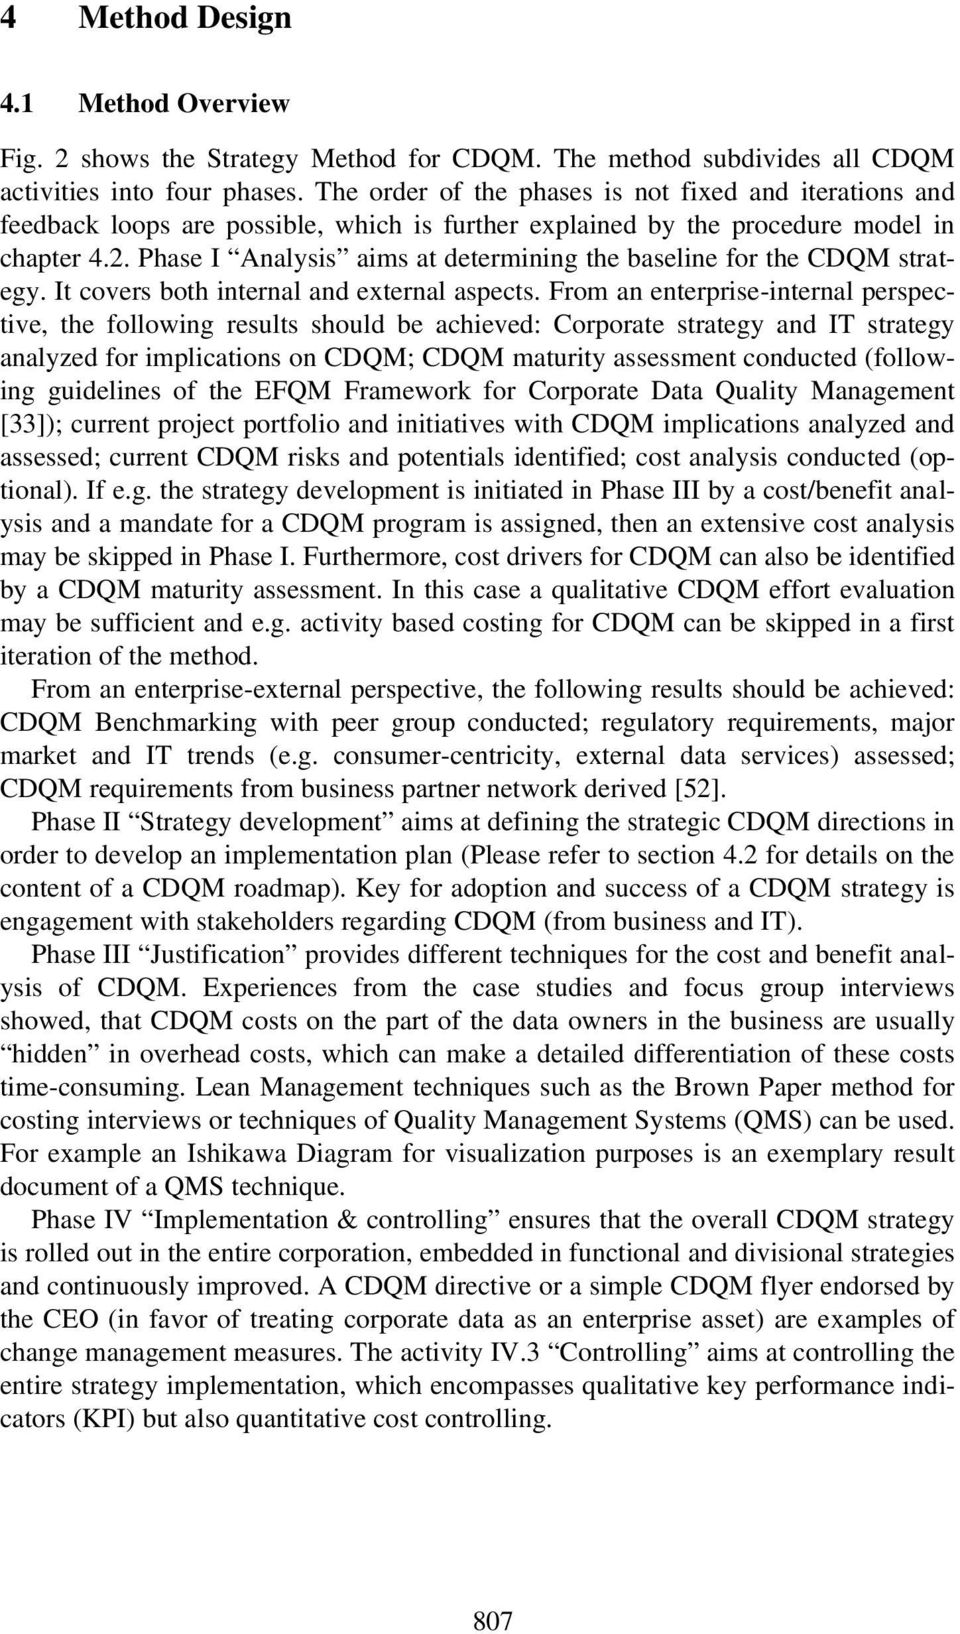 Phase I Analysis aims at determining the baseline for the CDQM strategy. It covers both internal and external aspects.